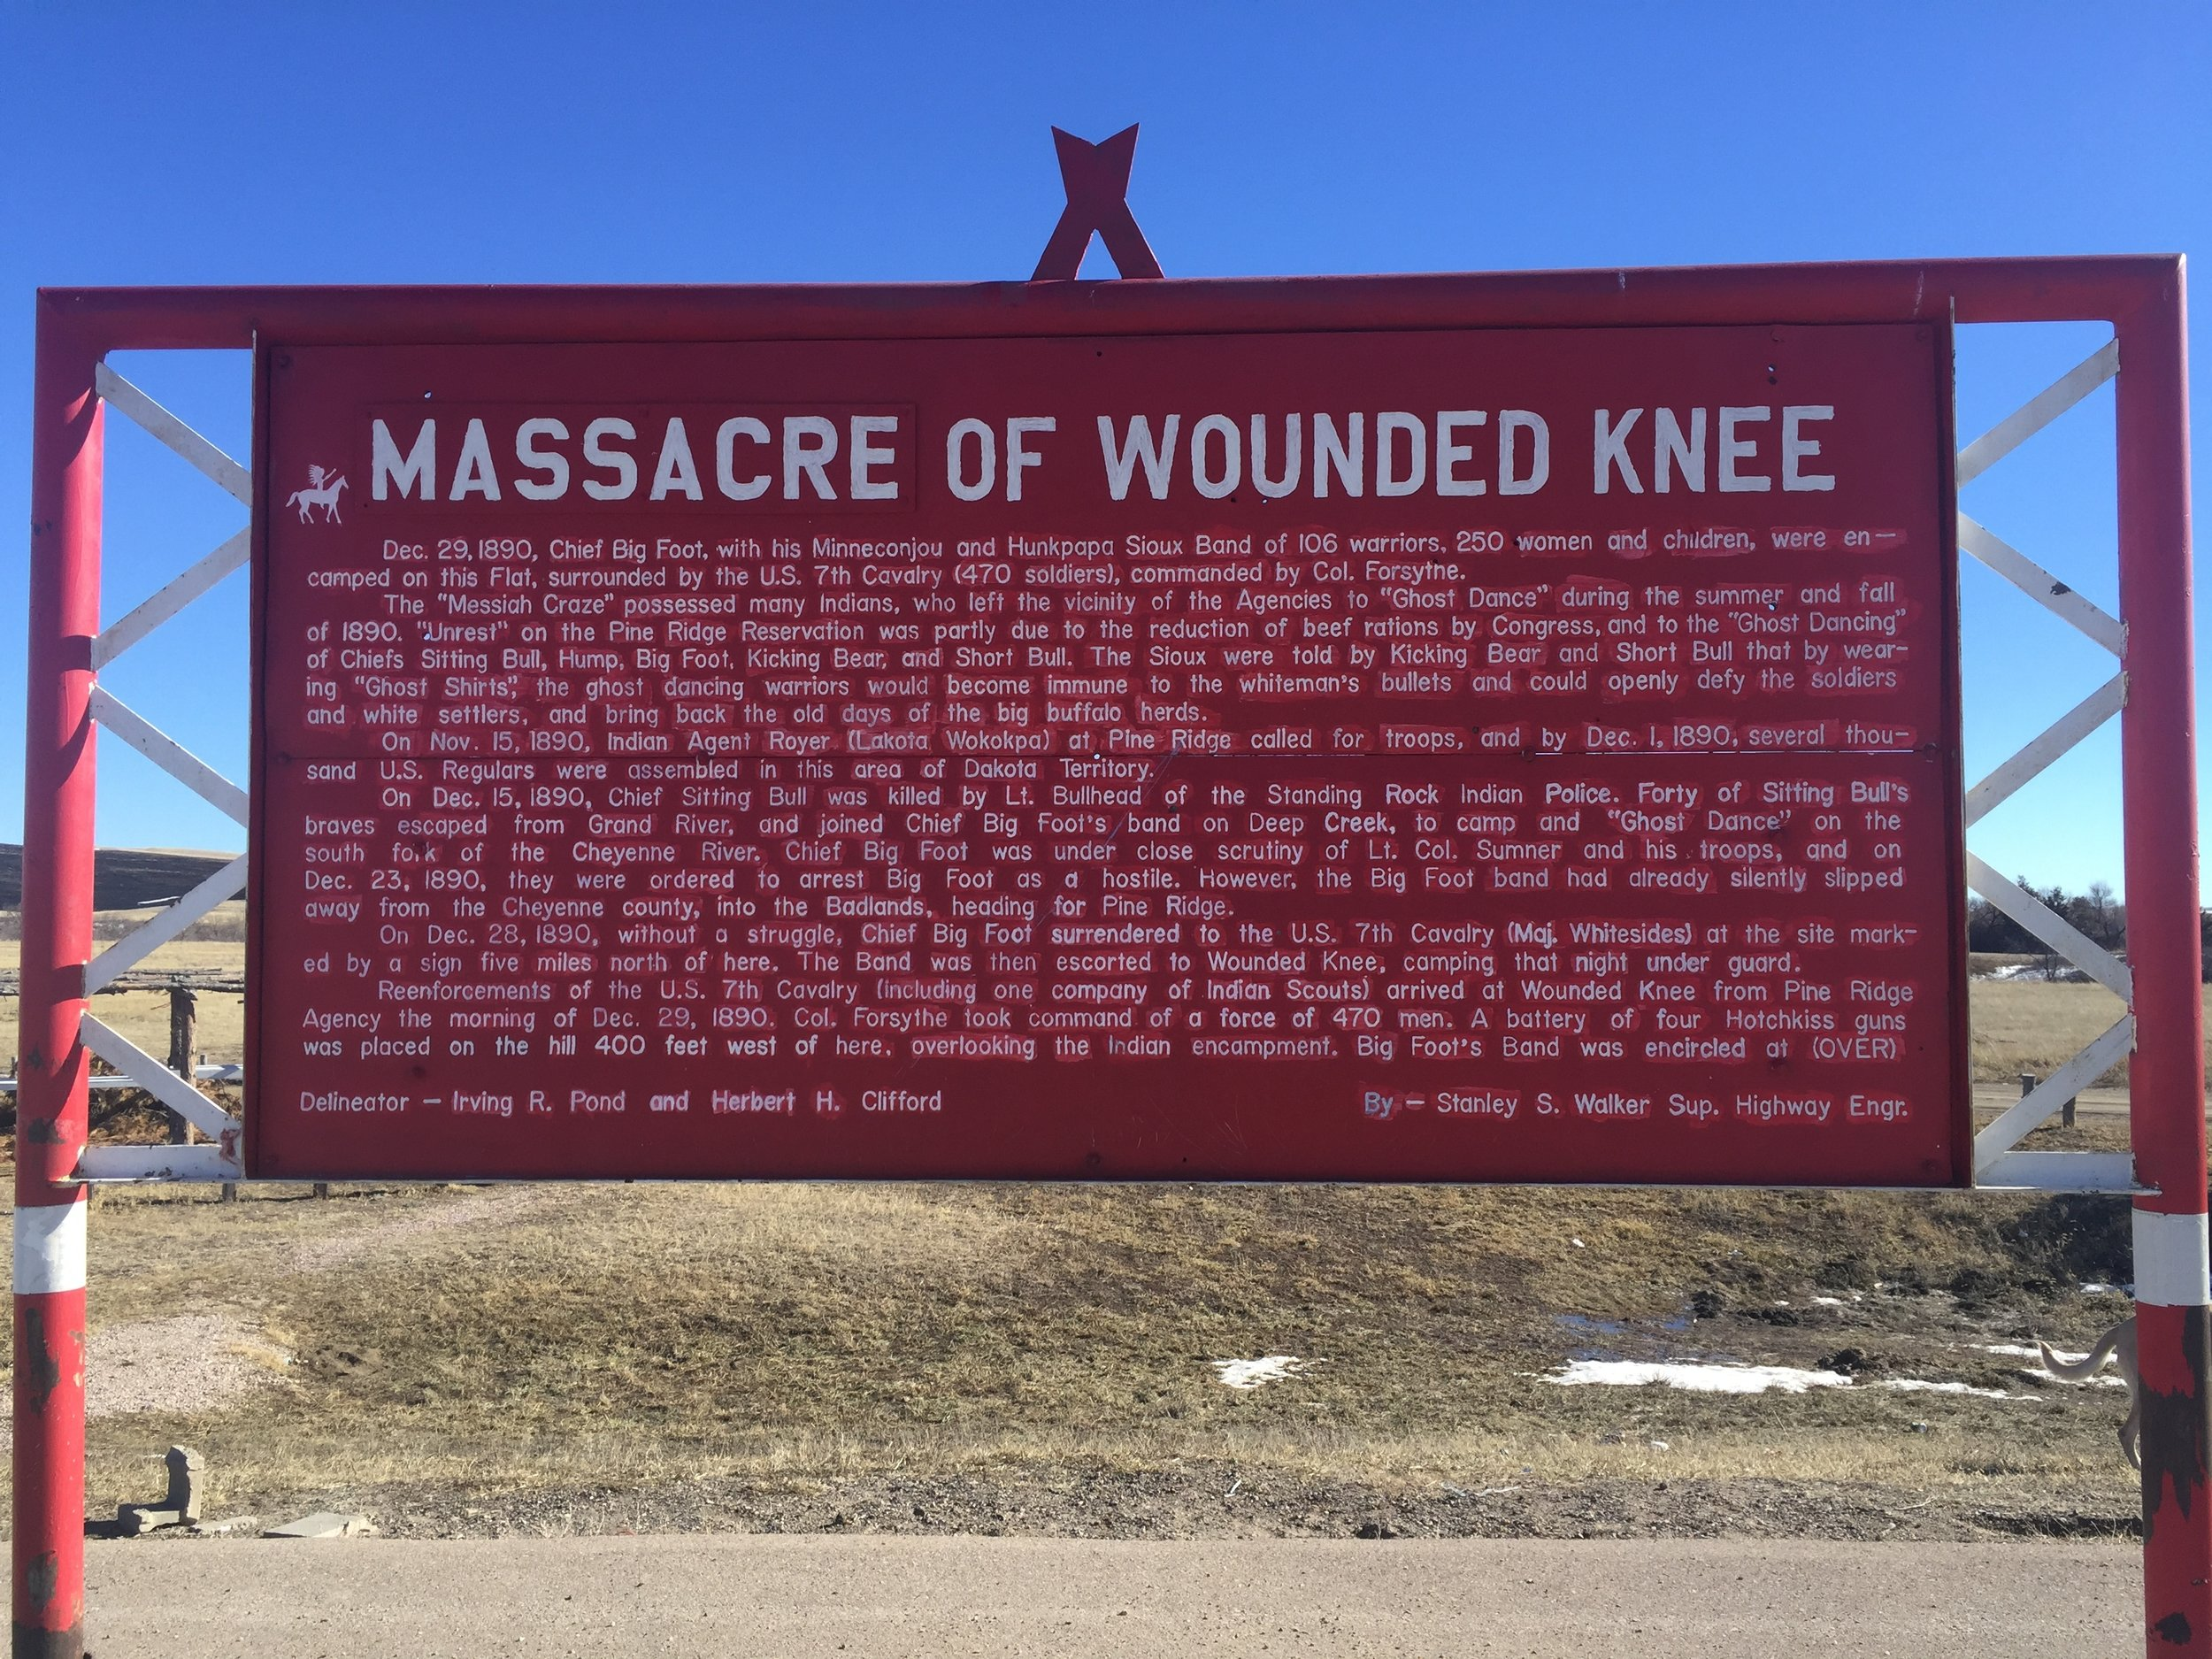 The history of Wounded Knee